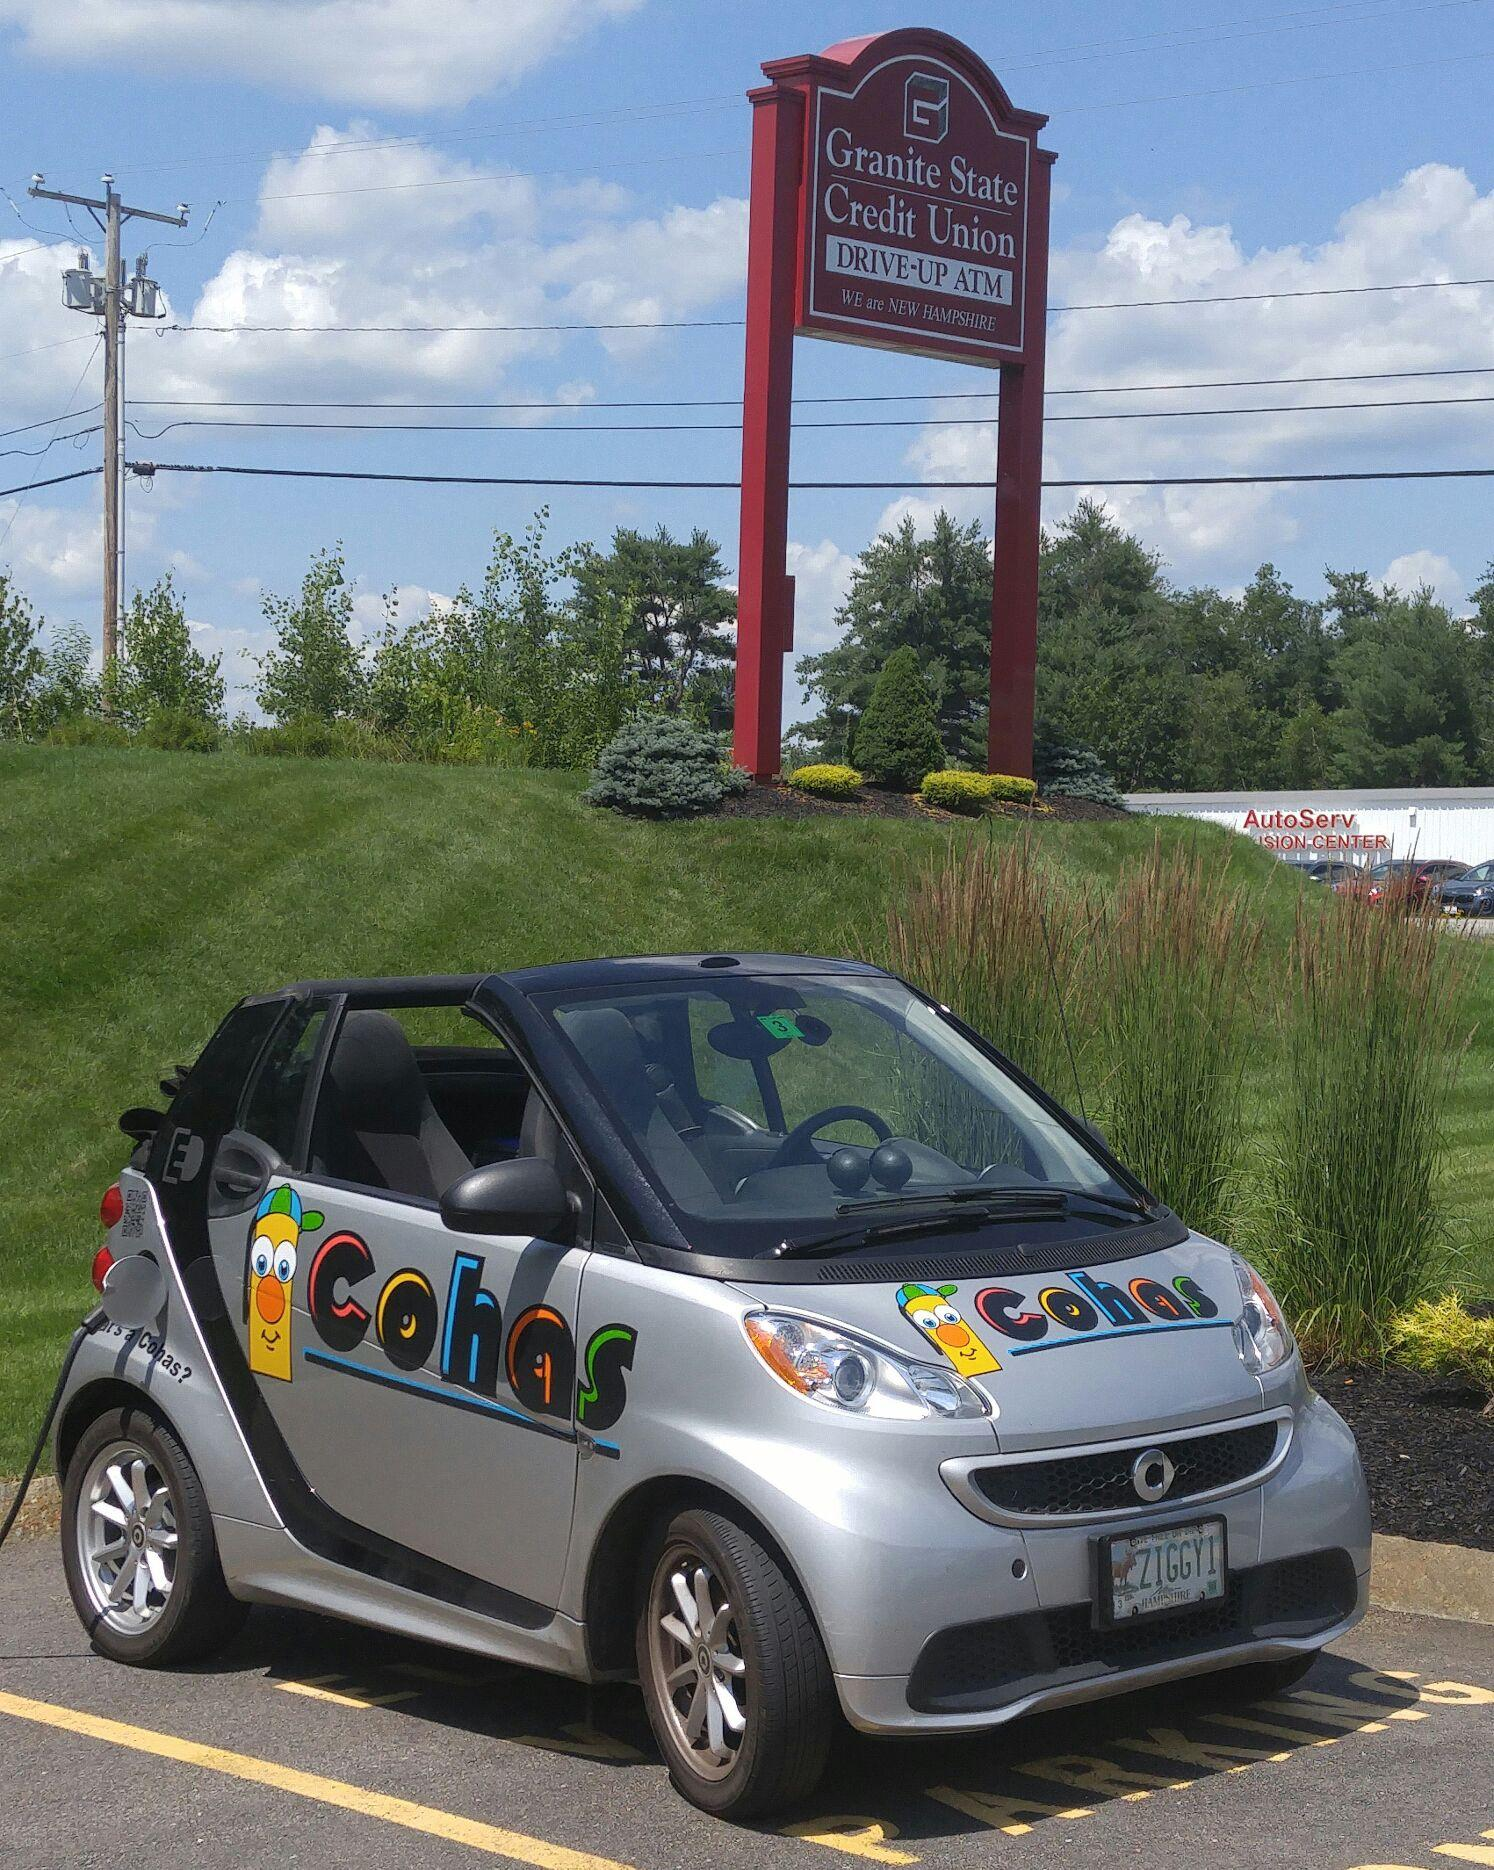 Granite State Credit Union Free Electric Car Charging 62 Check